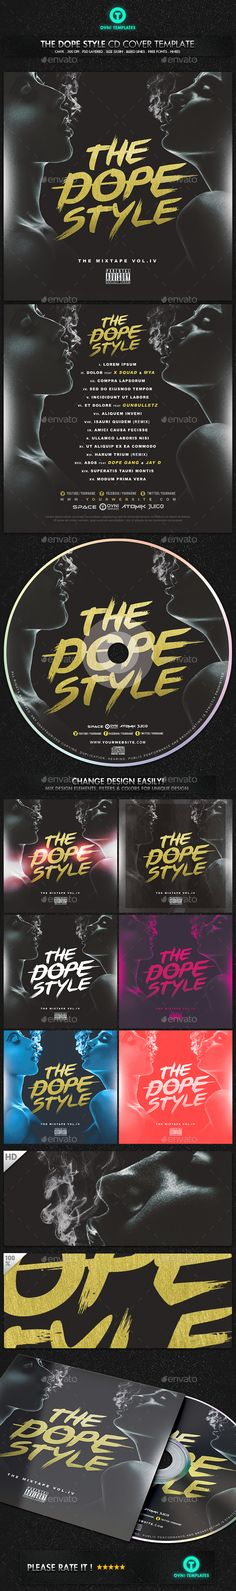 Dope Style Sexy CD Mixtape Cover Template PSD. Download here: http://graphicriver.net/item/dope-style-sexy-cd-mixtape-cover-template/14899377?ref=ksioks